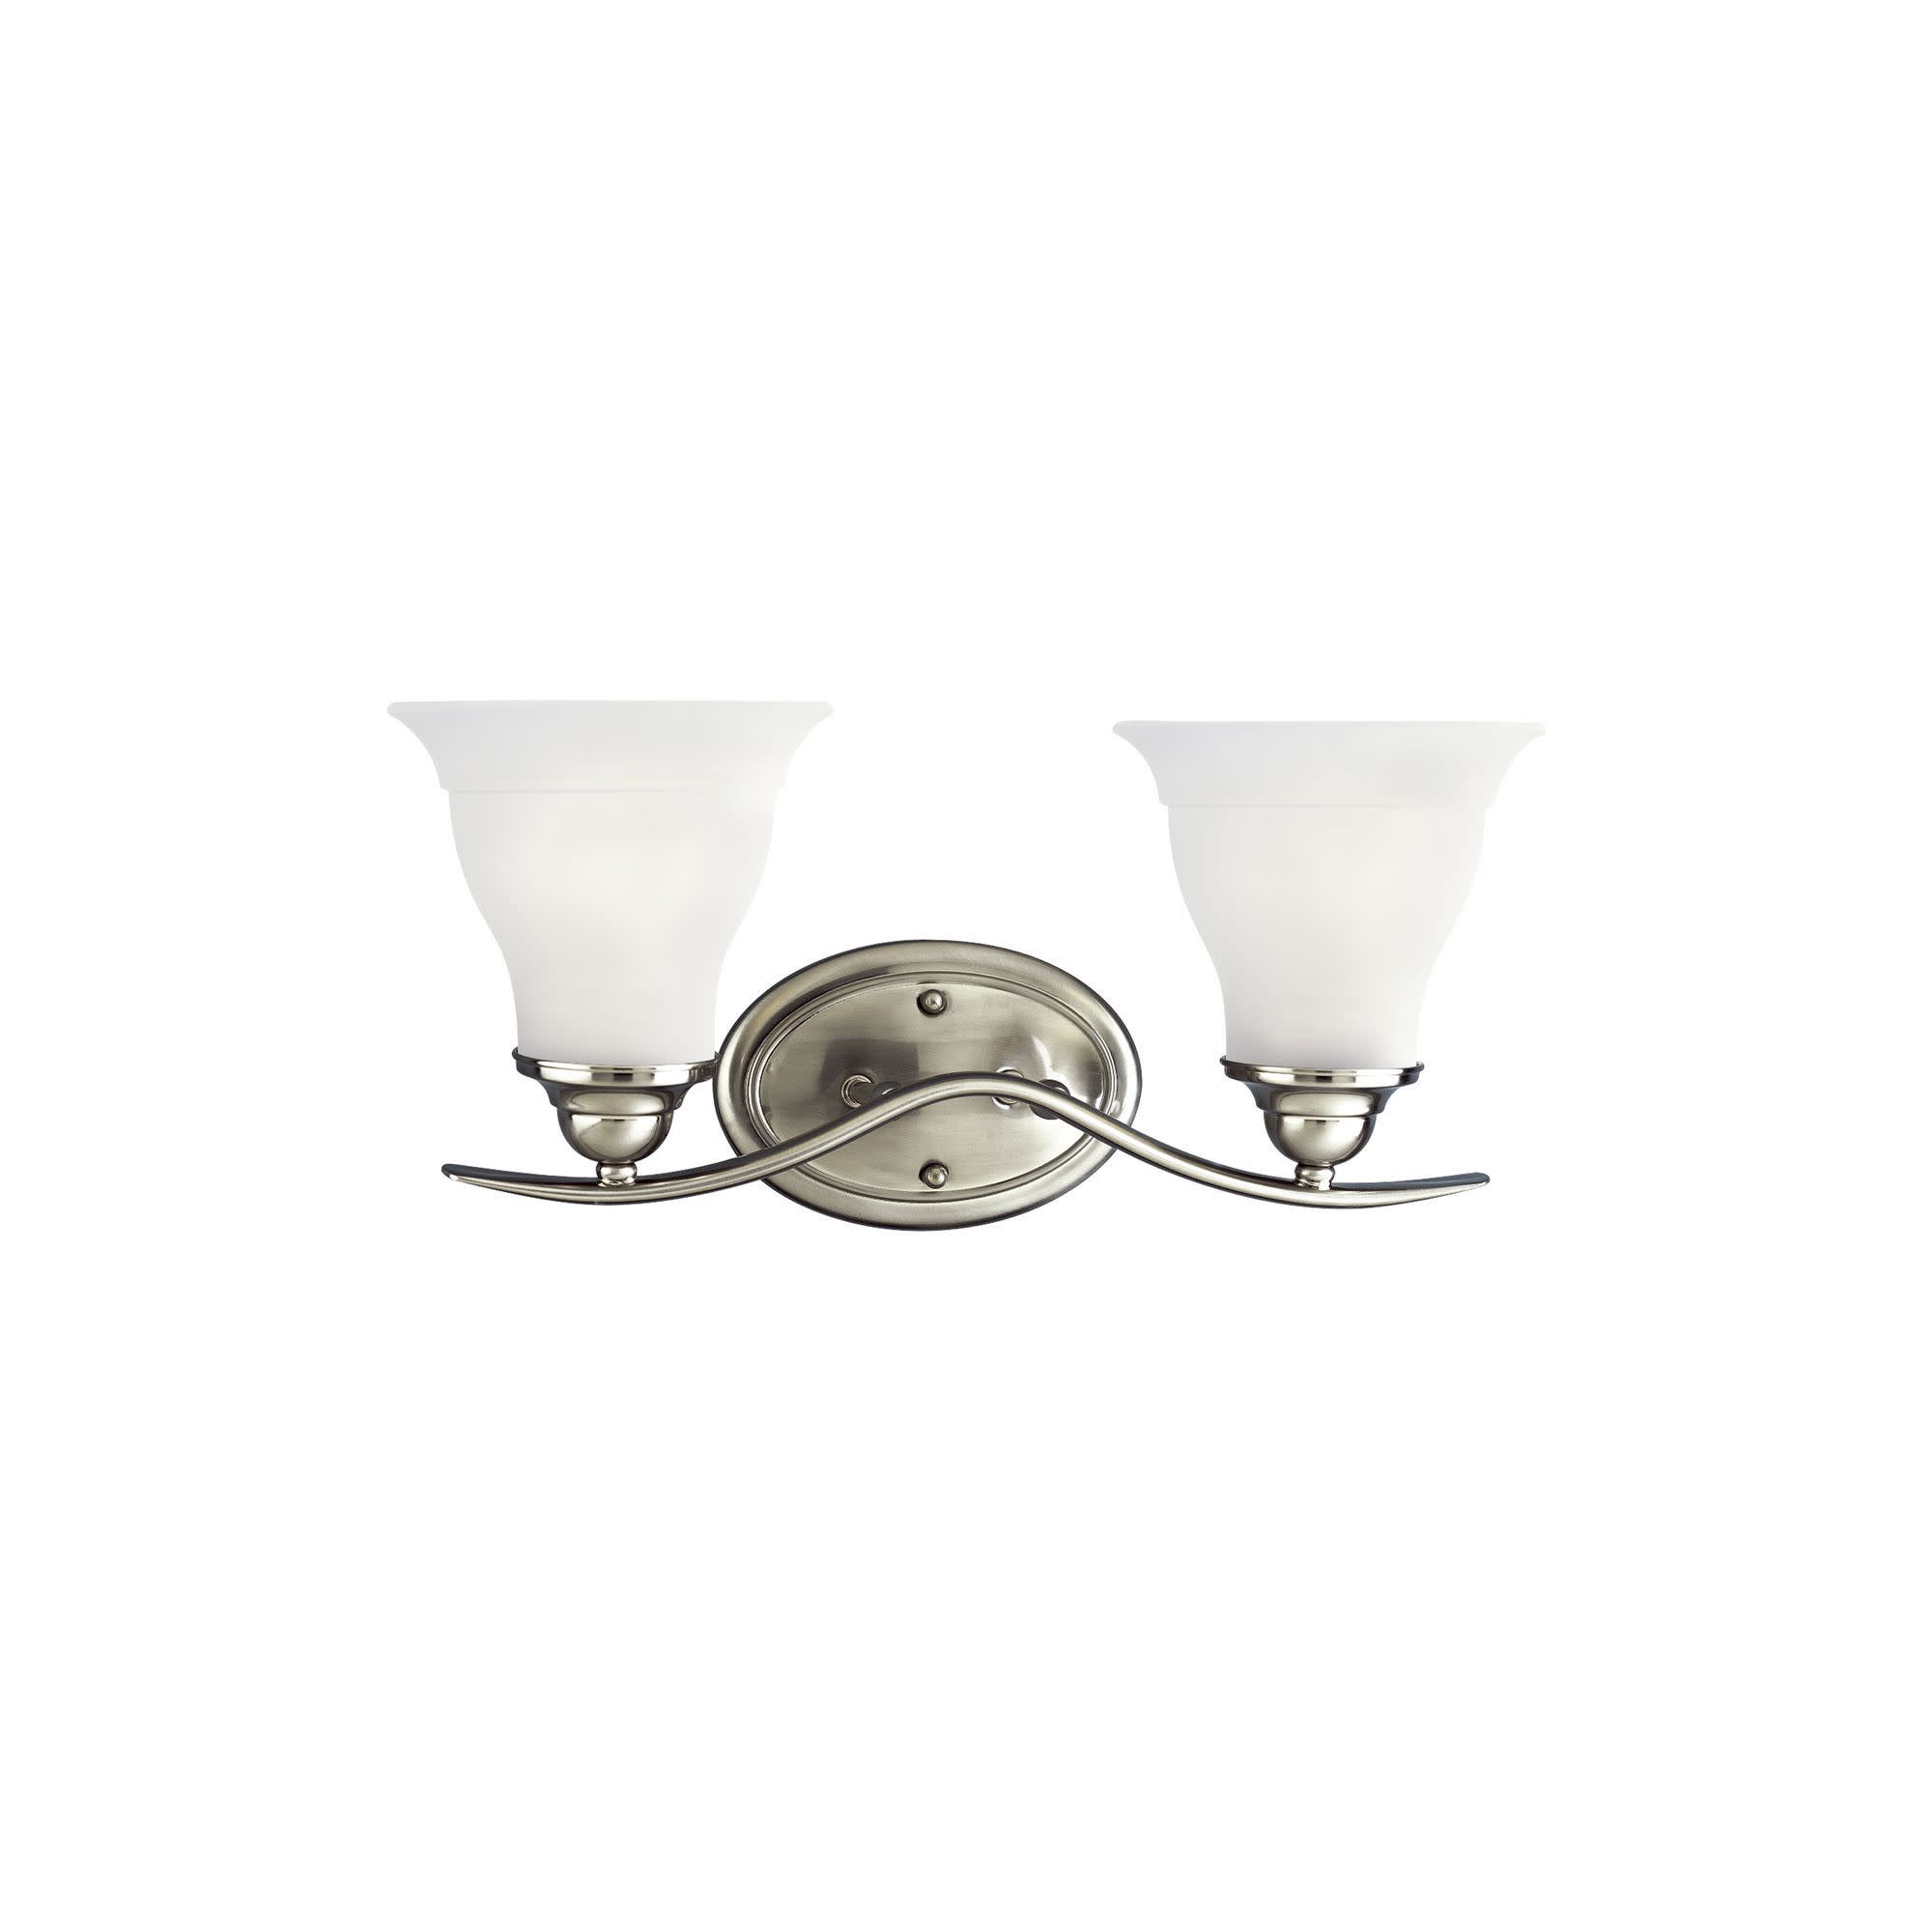 Photo of Progress Lighting P3191 Trinity 2 Light Bathroom Vanity Light with Etched Glass Shades – Brushed Nickel